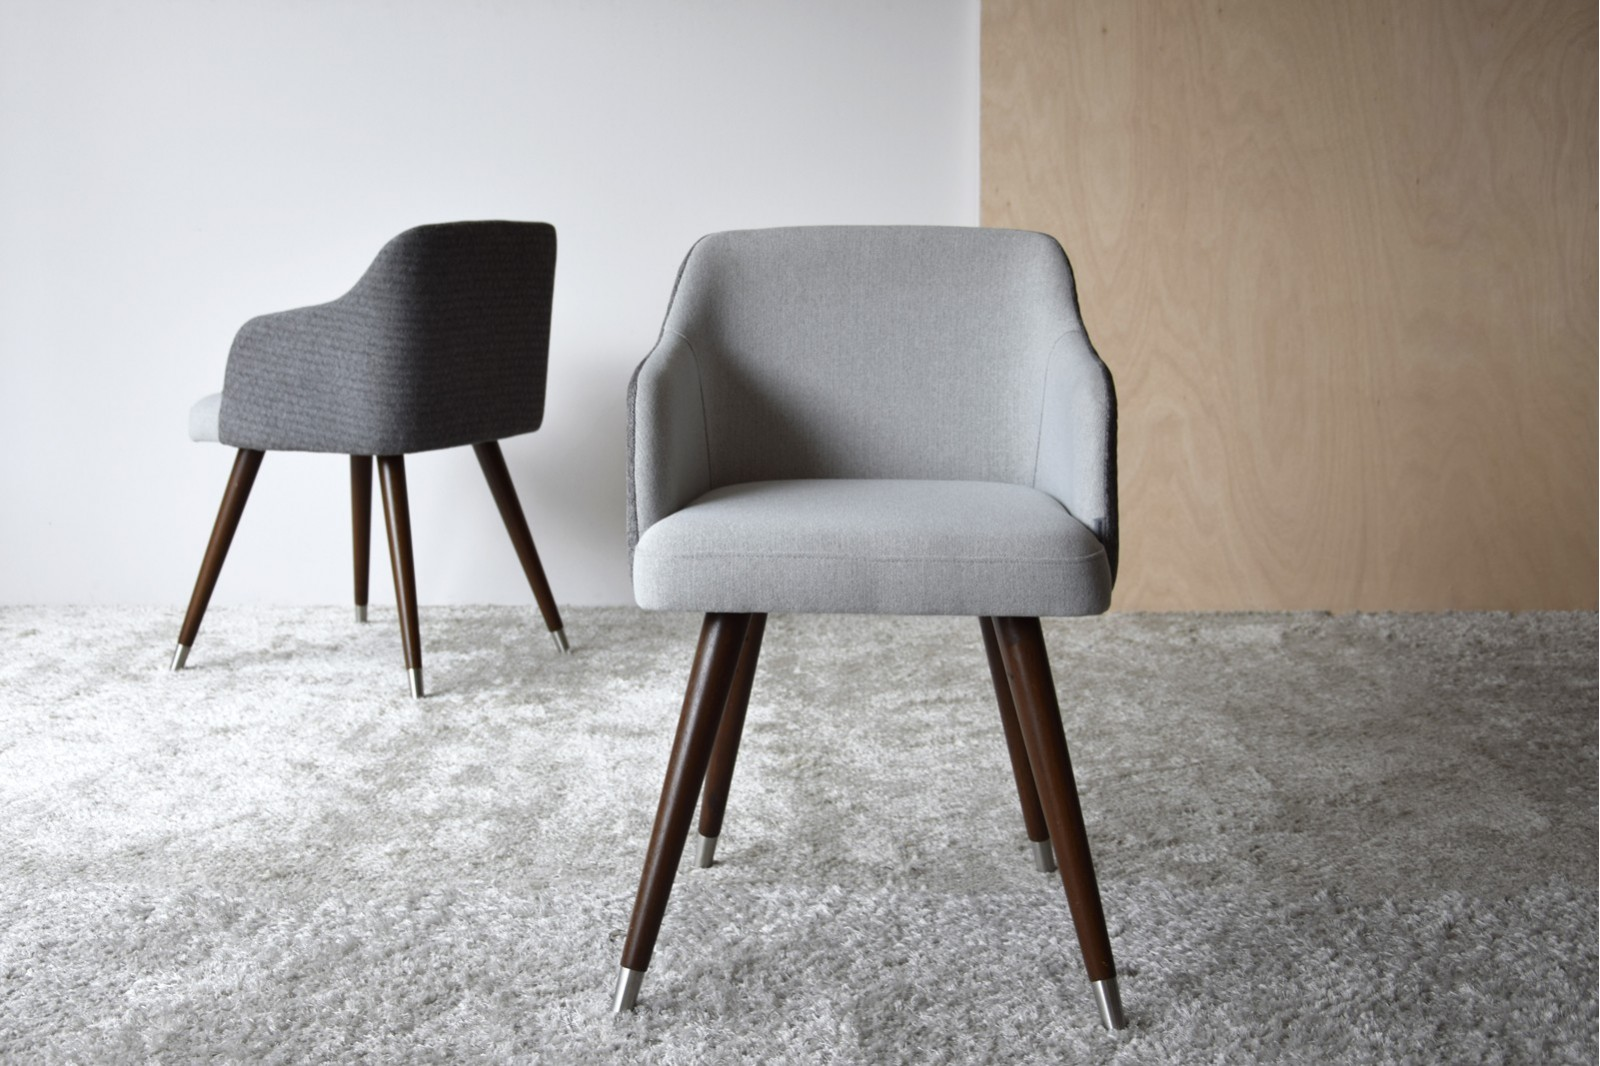 DINING CHAIR. GREY COLOR AND WOODEN LEGS.